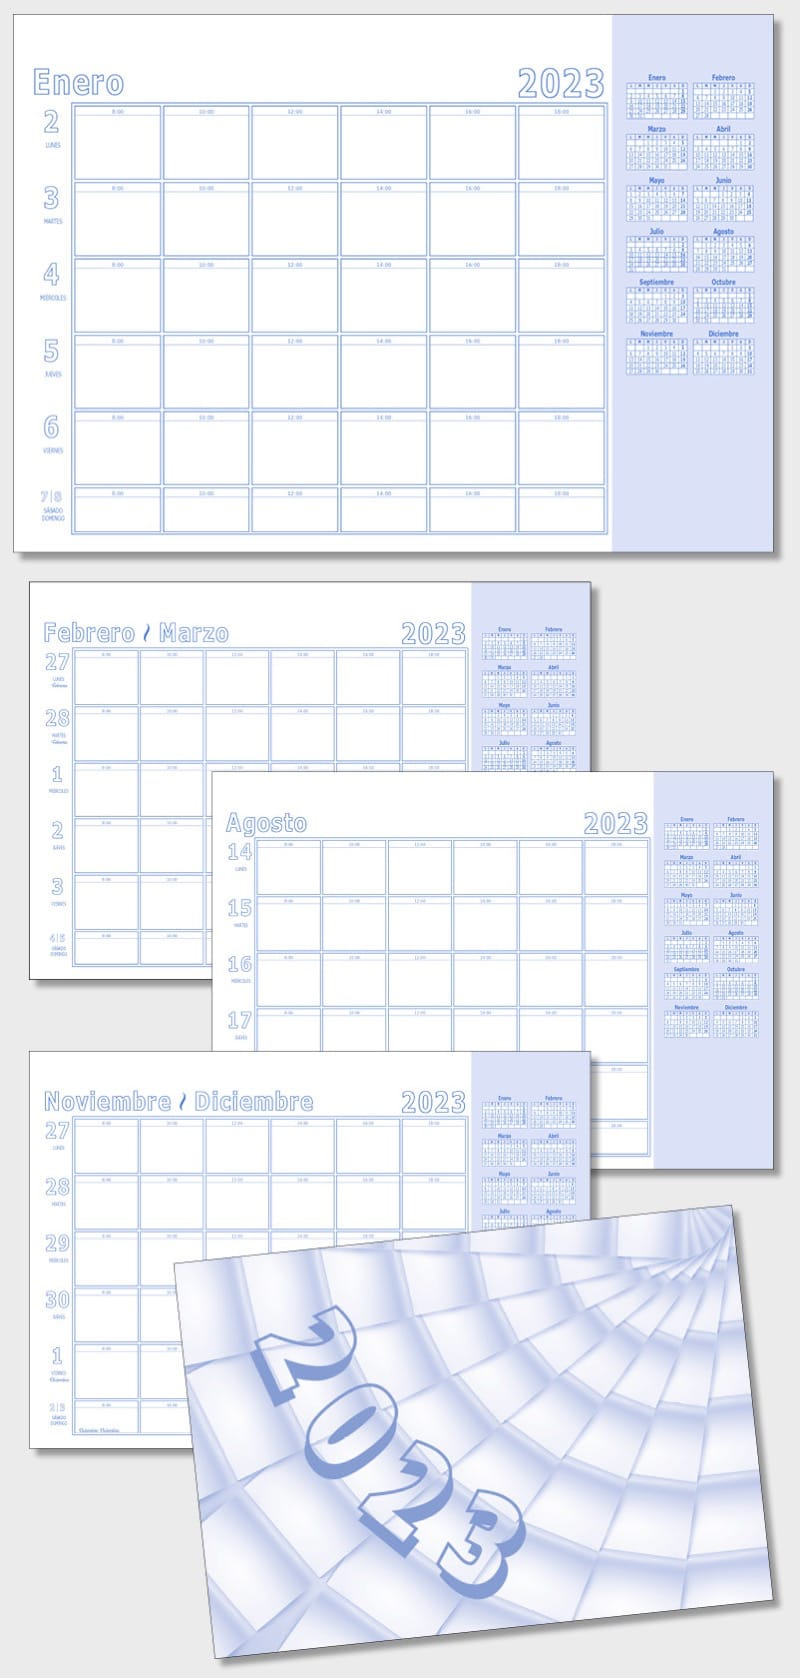 Vistoso plantillas de calendario iphoto festooning for Iphoto calendar templates